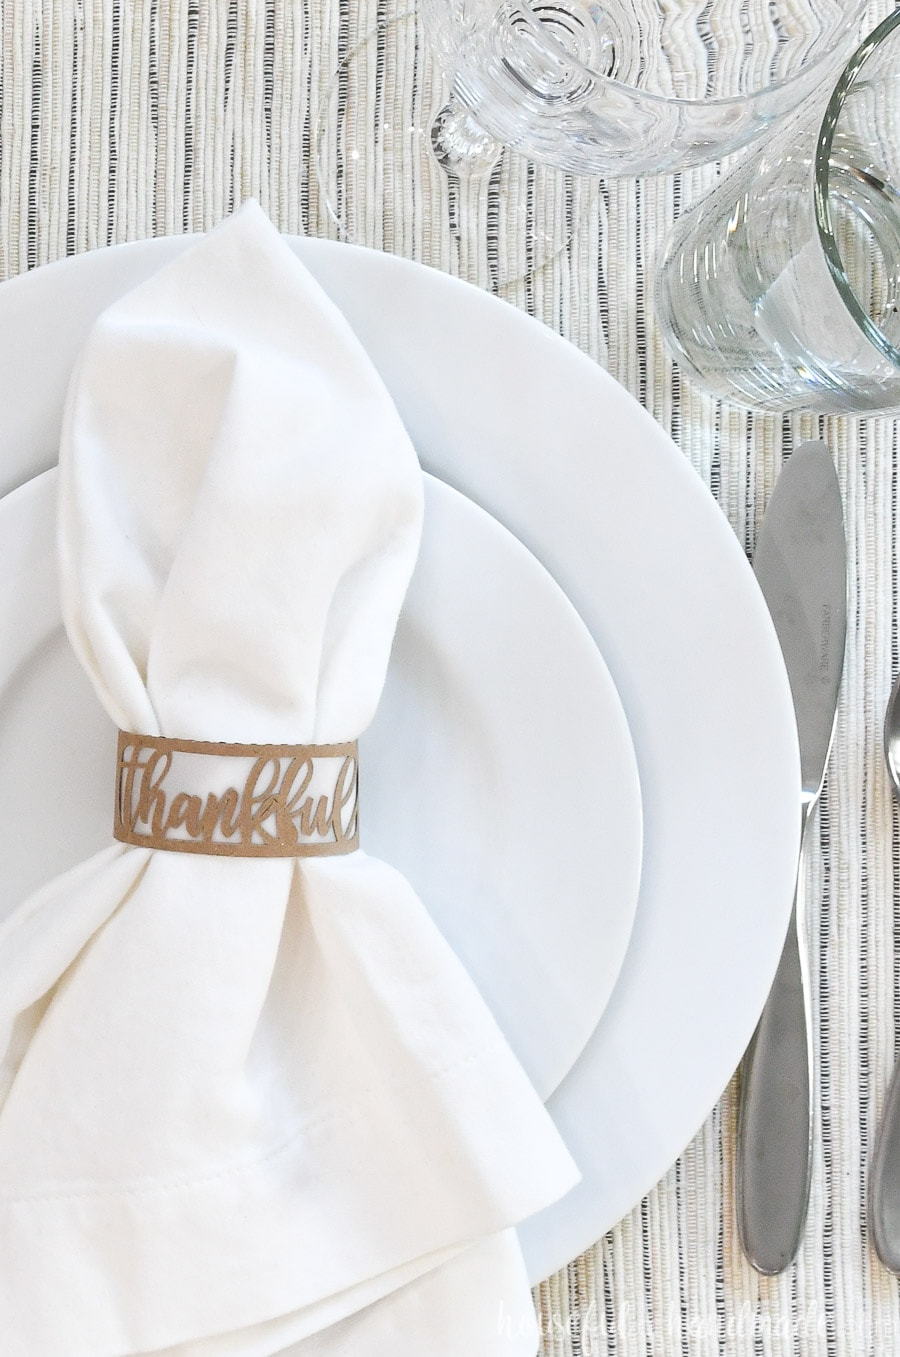 Close-up of the Thankful designed thanksgiving napkin rings.